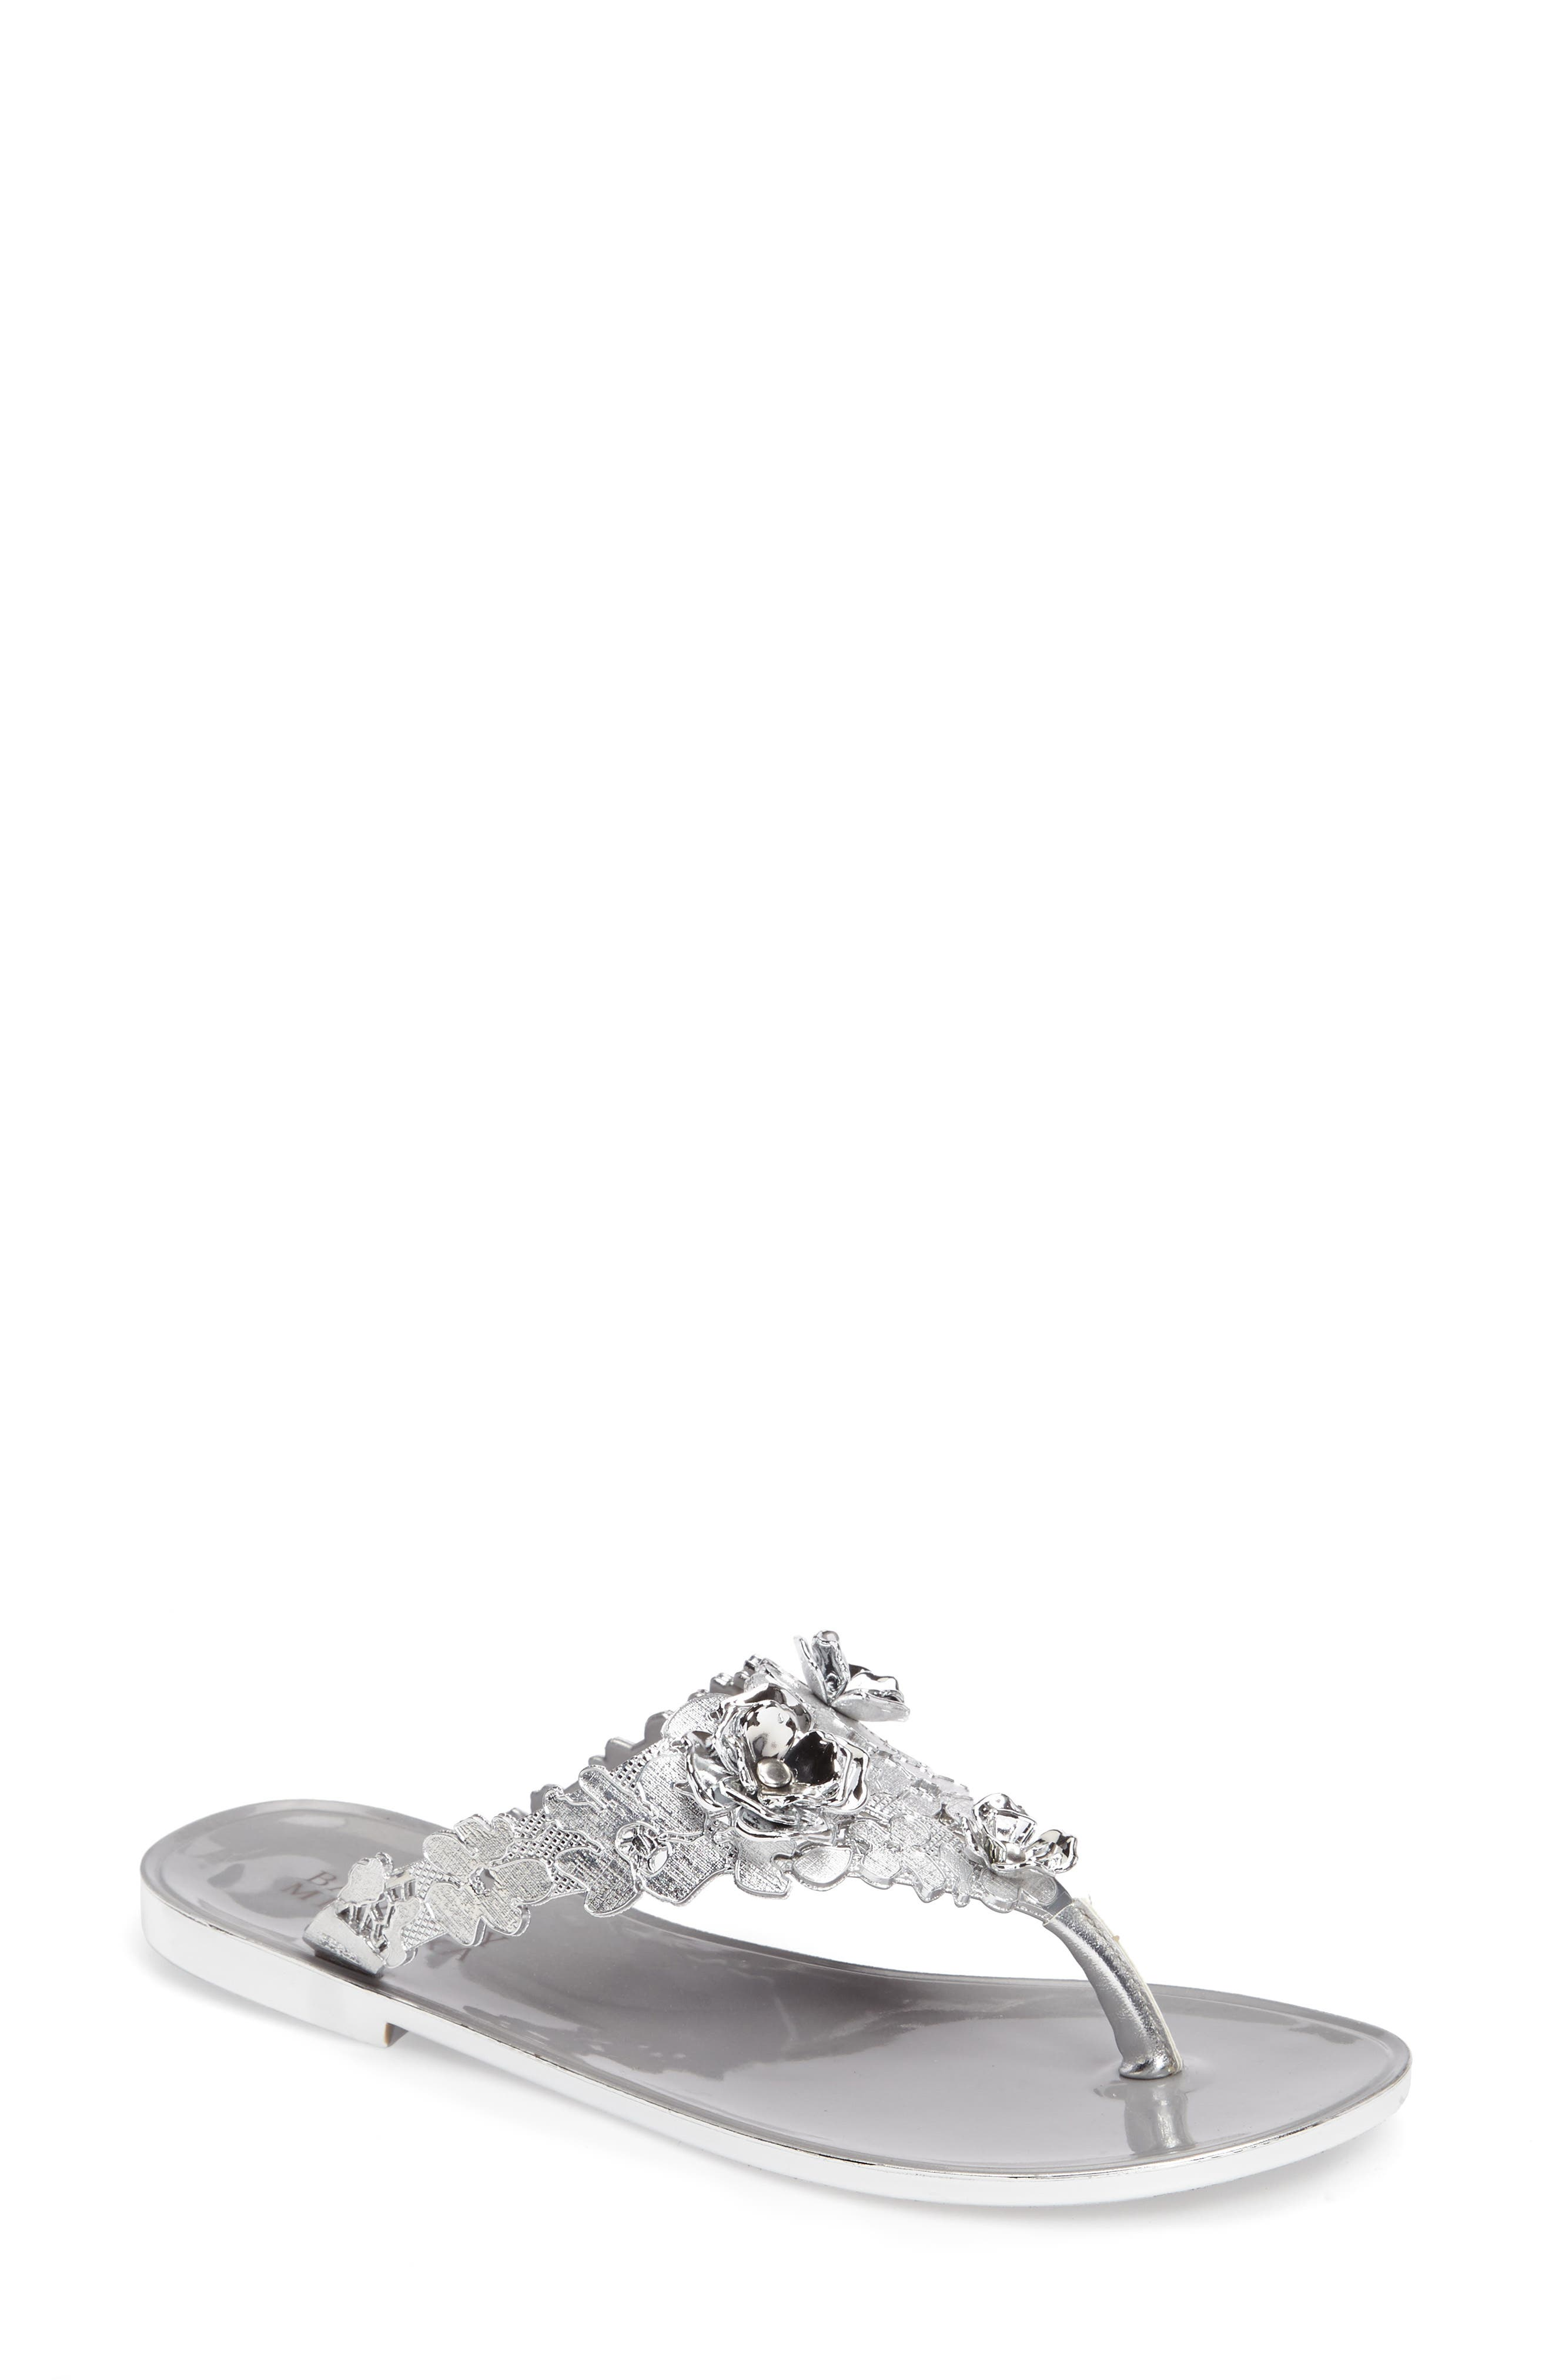 Badgley Mischka Bali Jelly Flip Flop (Women)